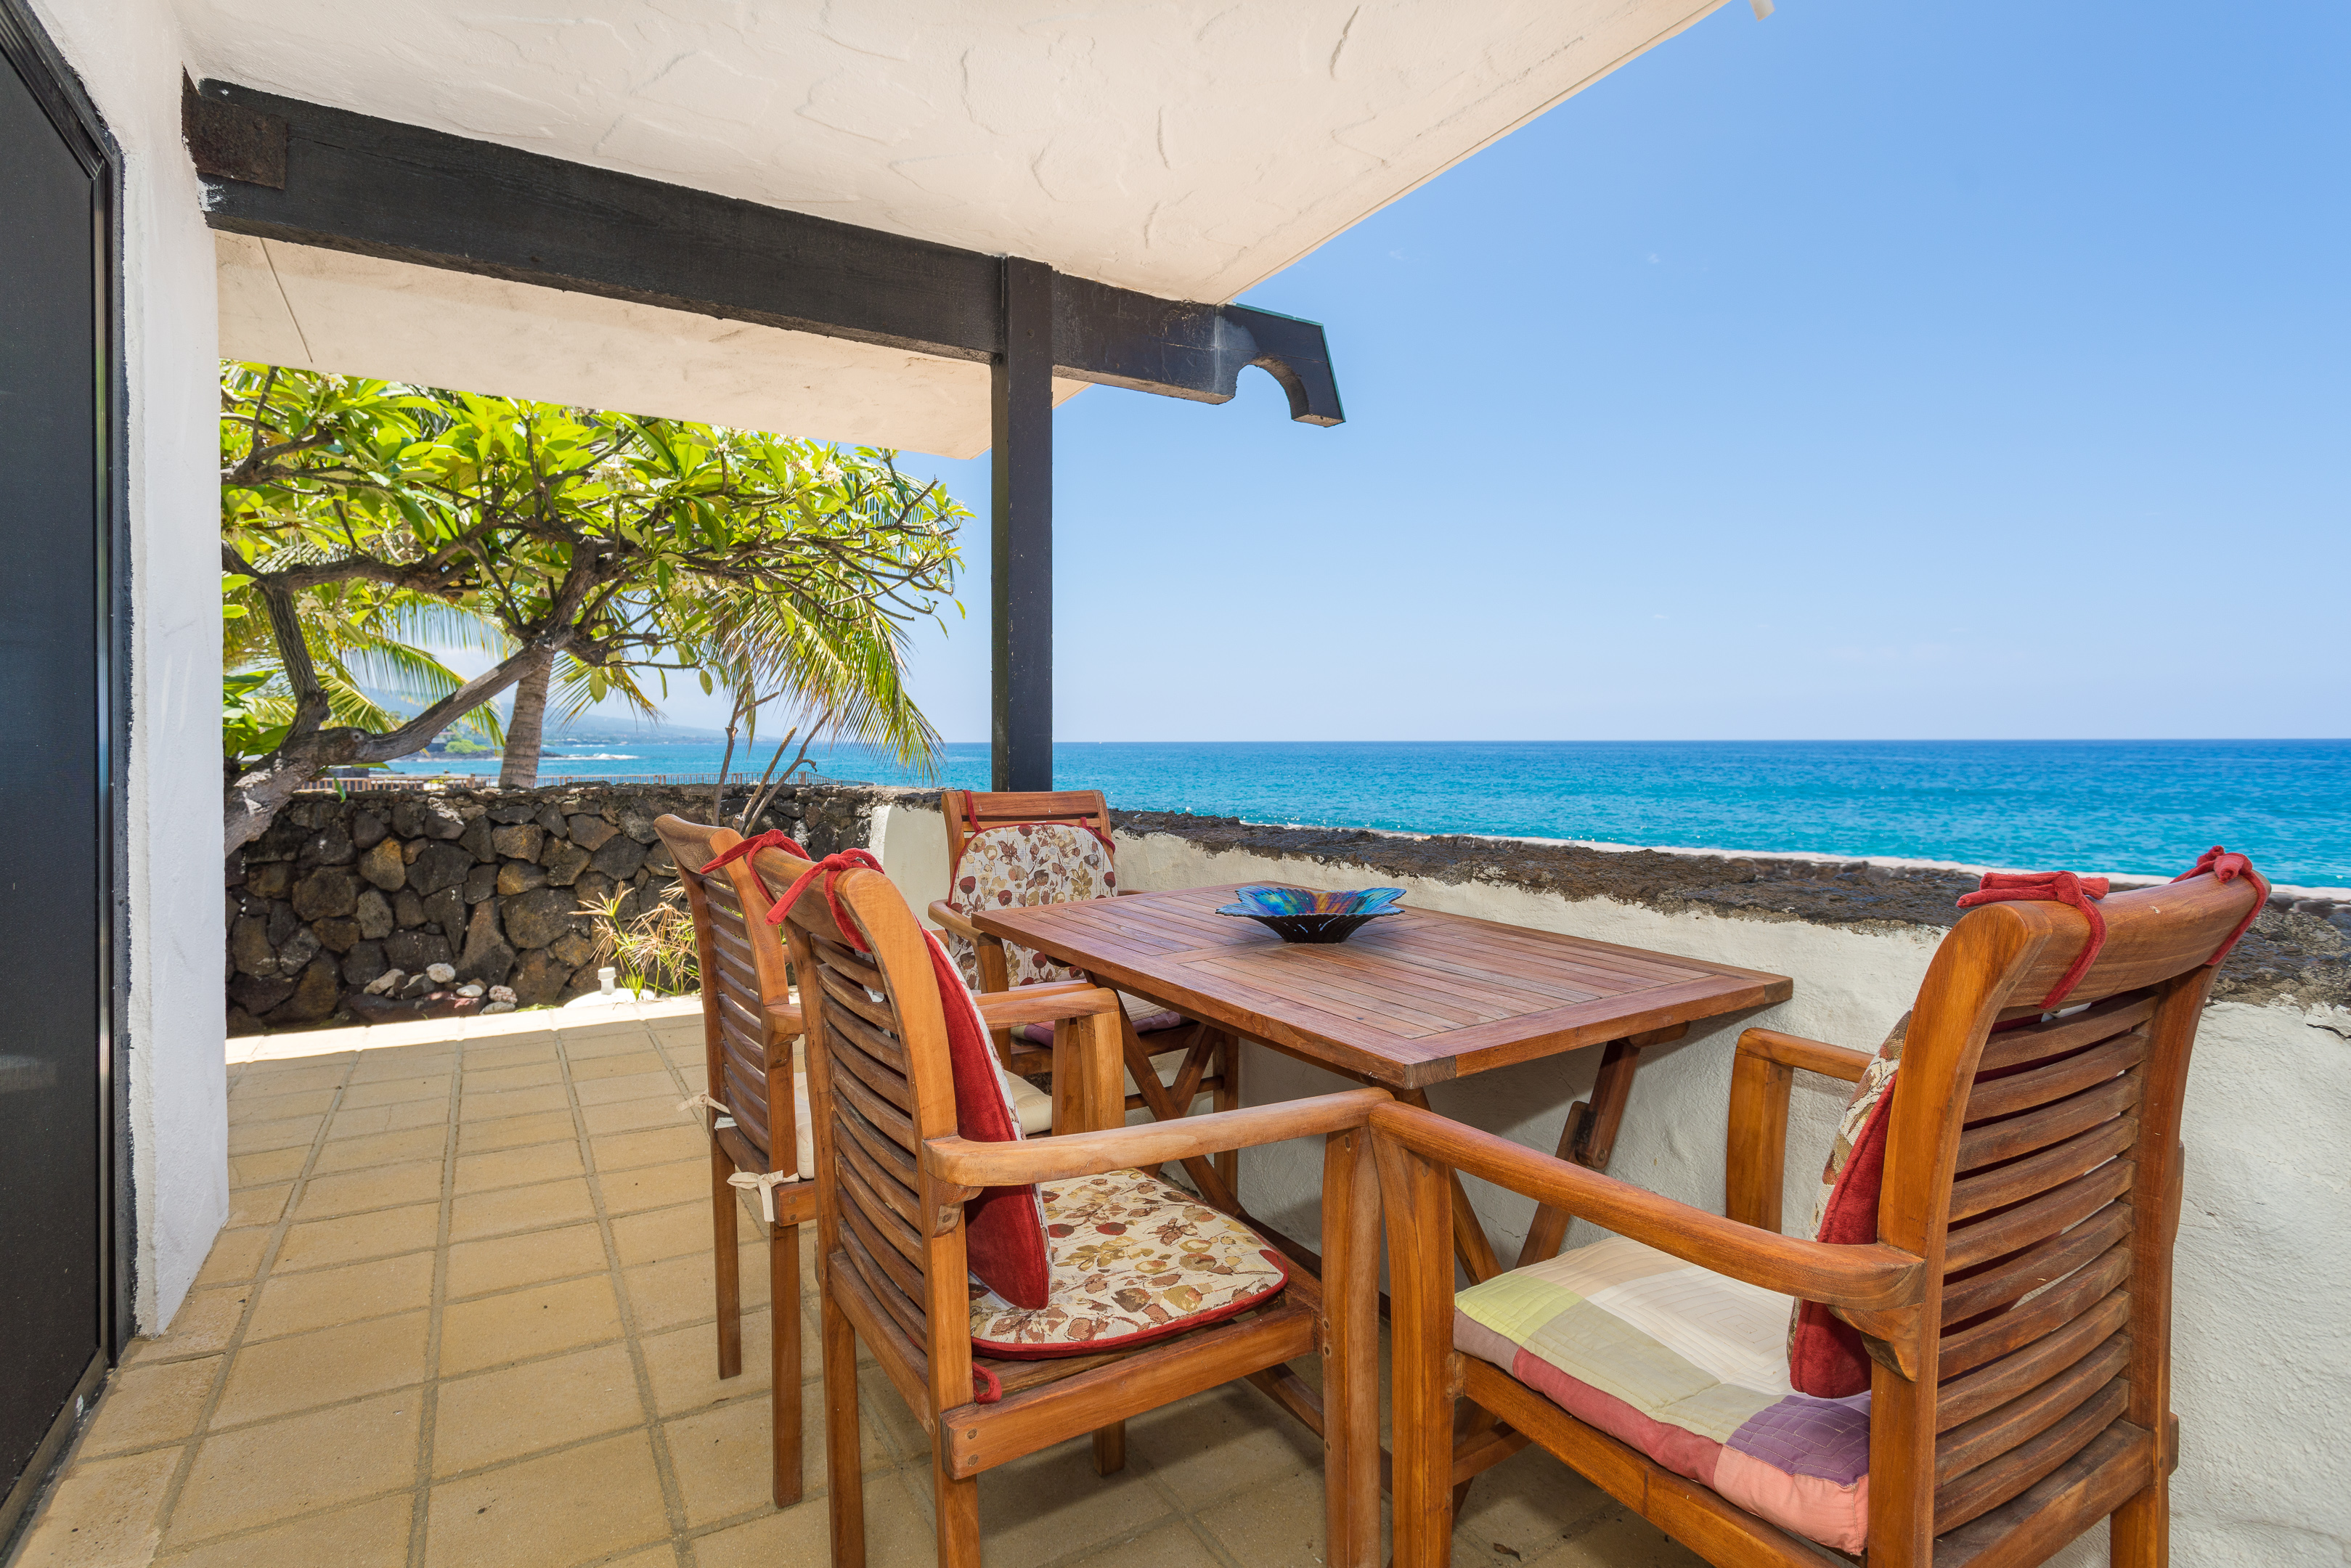 Kailua Kona oceanfront vacation rental with oceanfront pool and 2 bedrooms